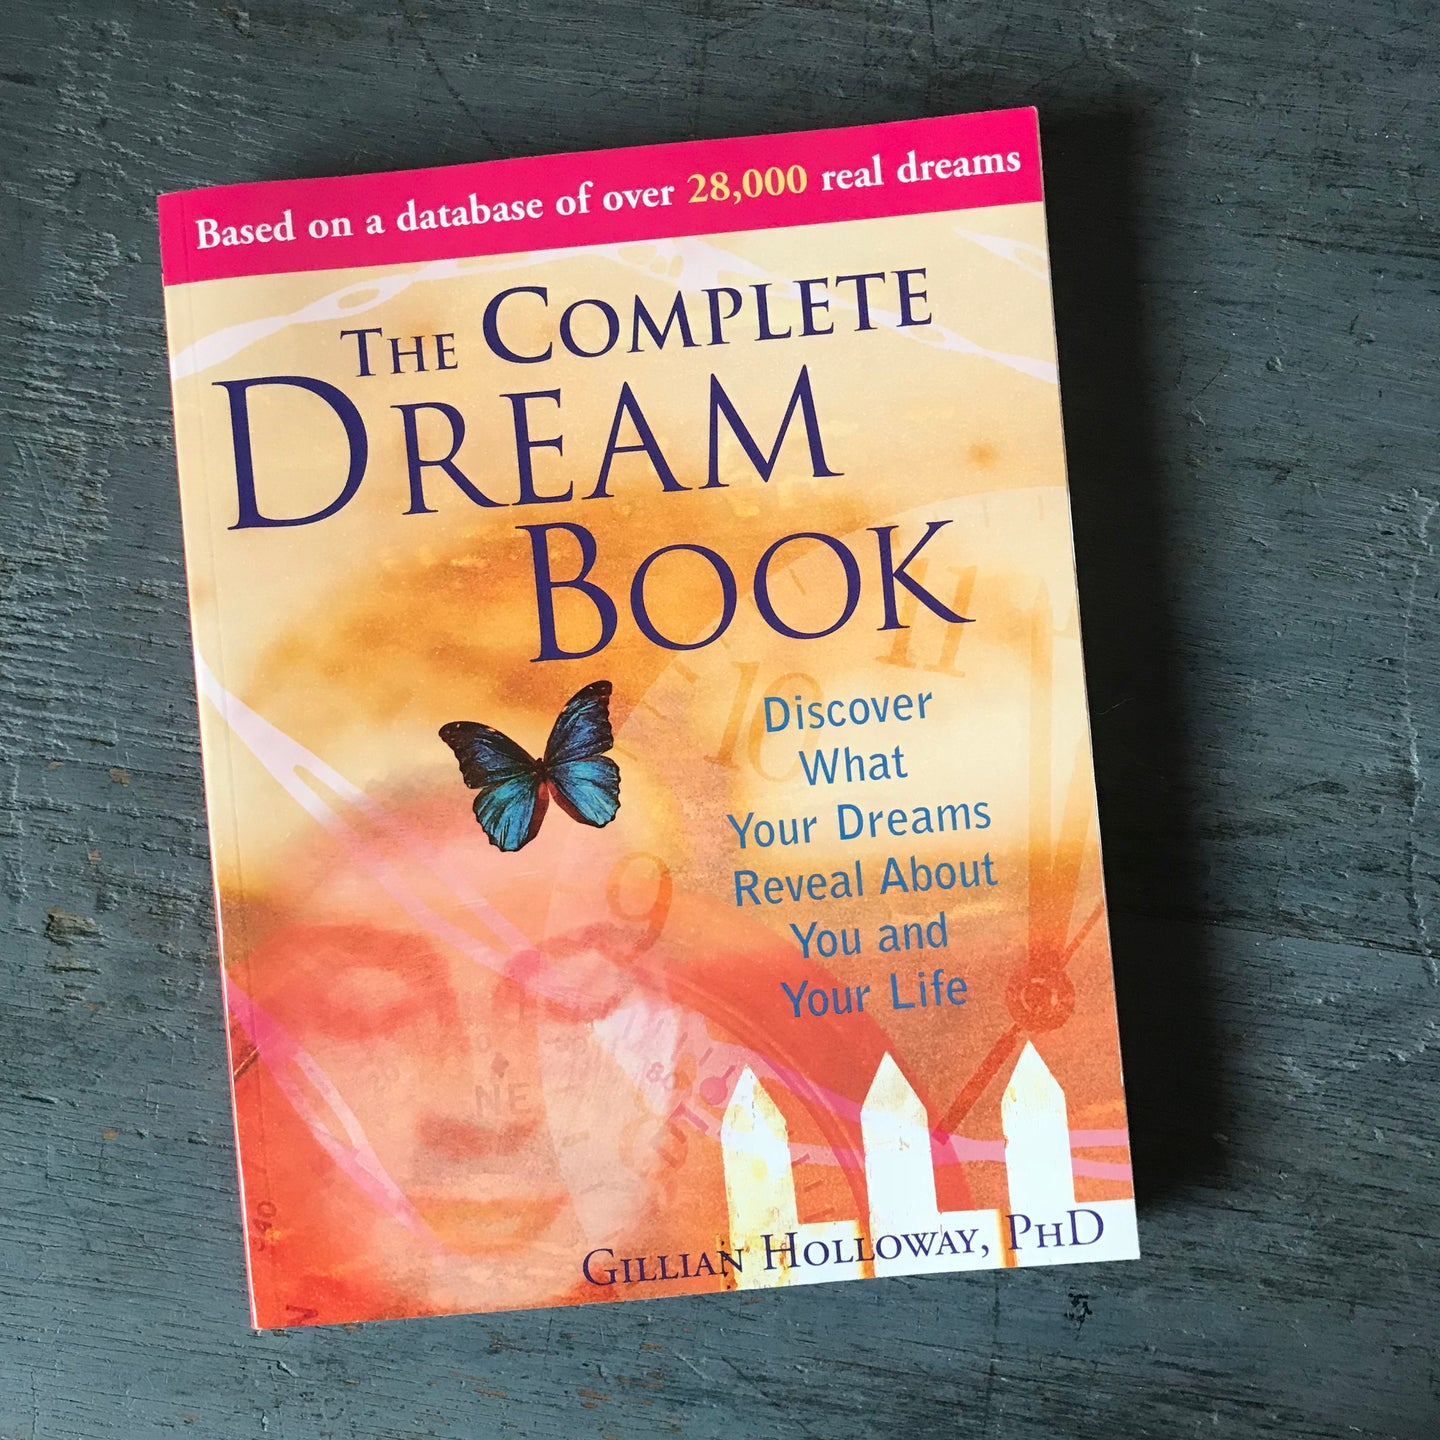 The Complete Dream Book - Gillian Holloway PhD - 2006